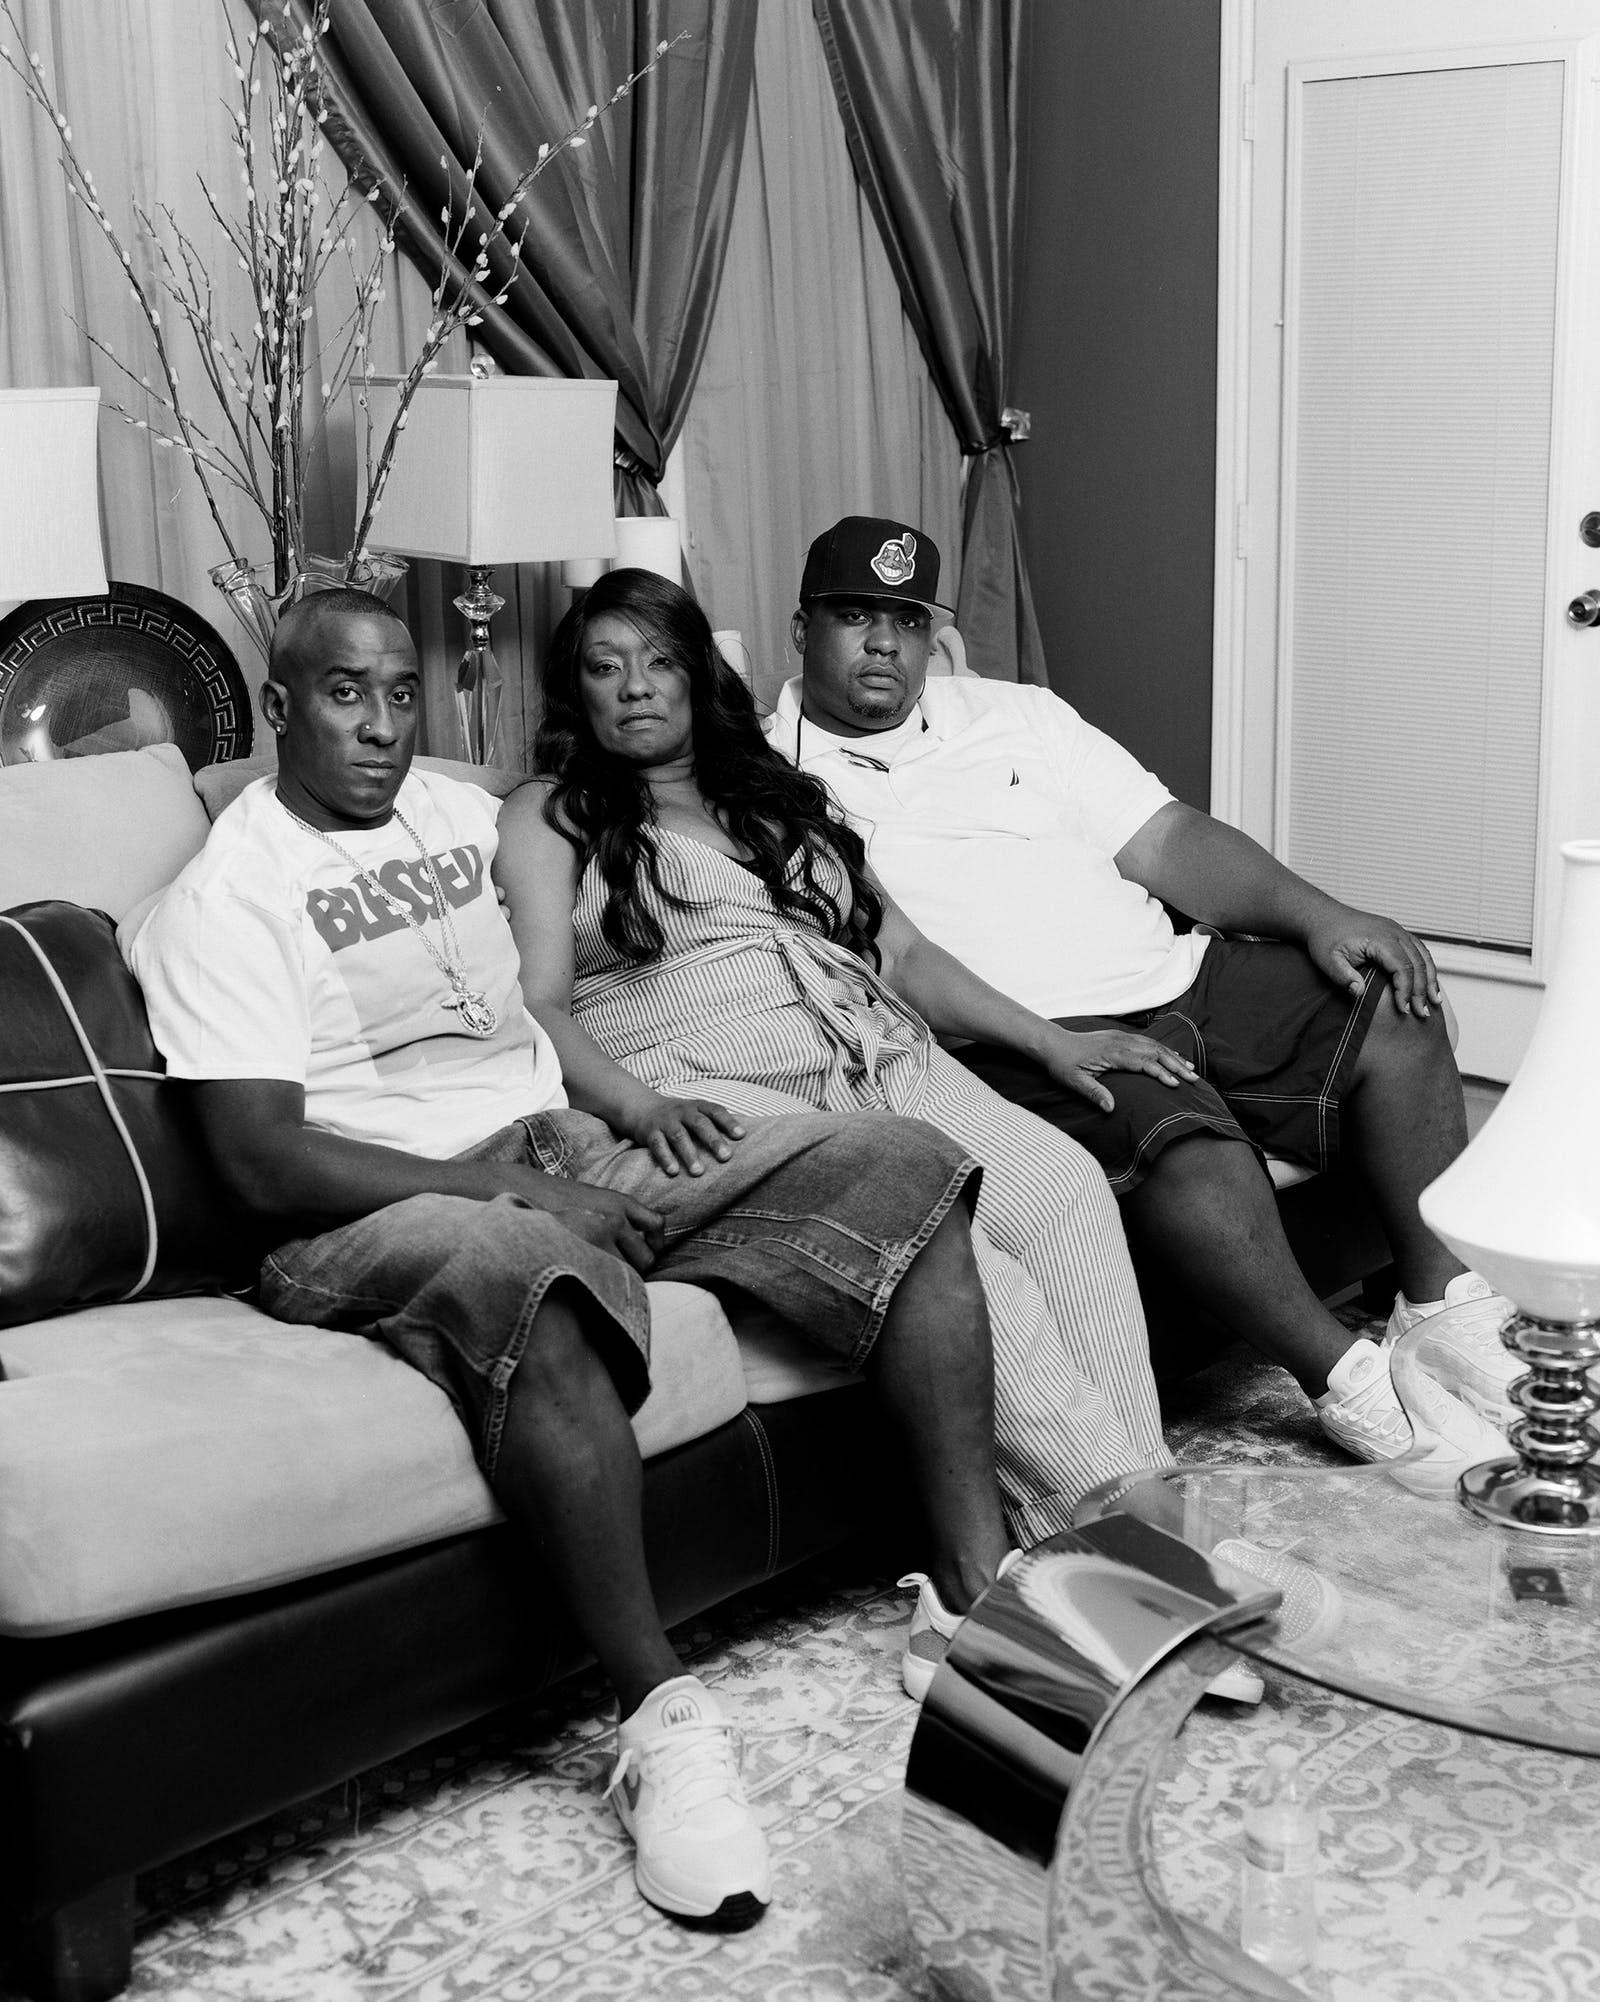 Lydell, Donna, and Alonzo in Houston on September 1, 2020.